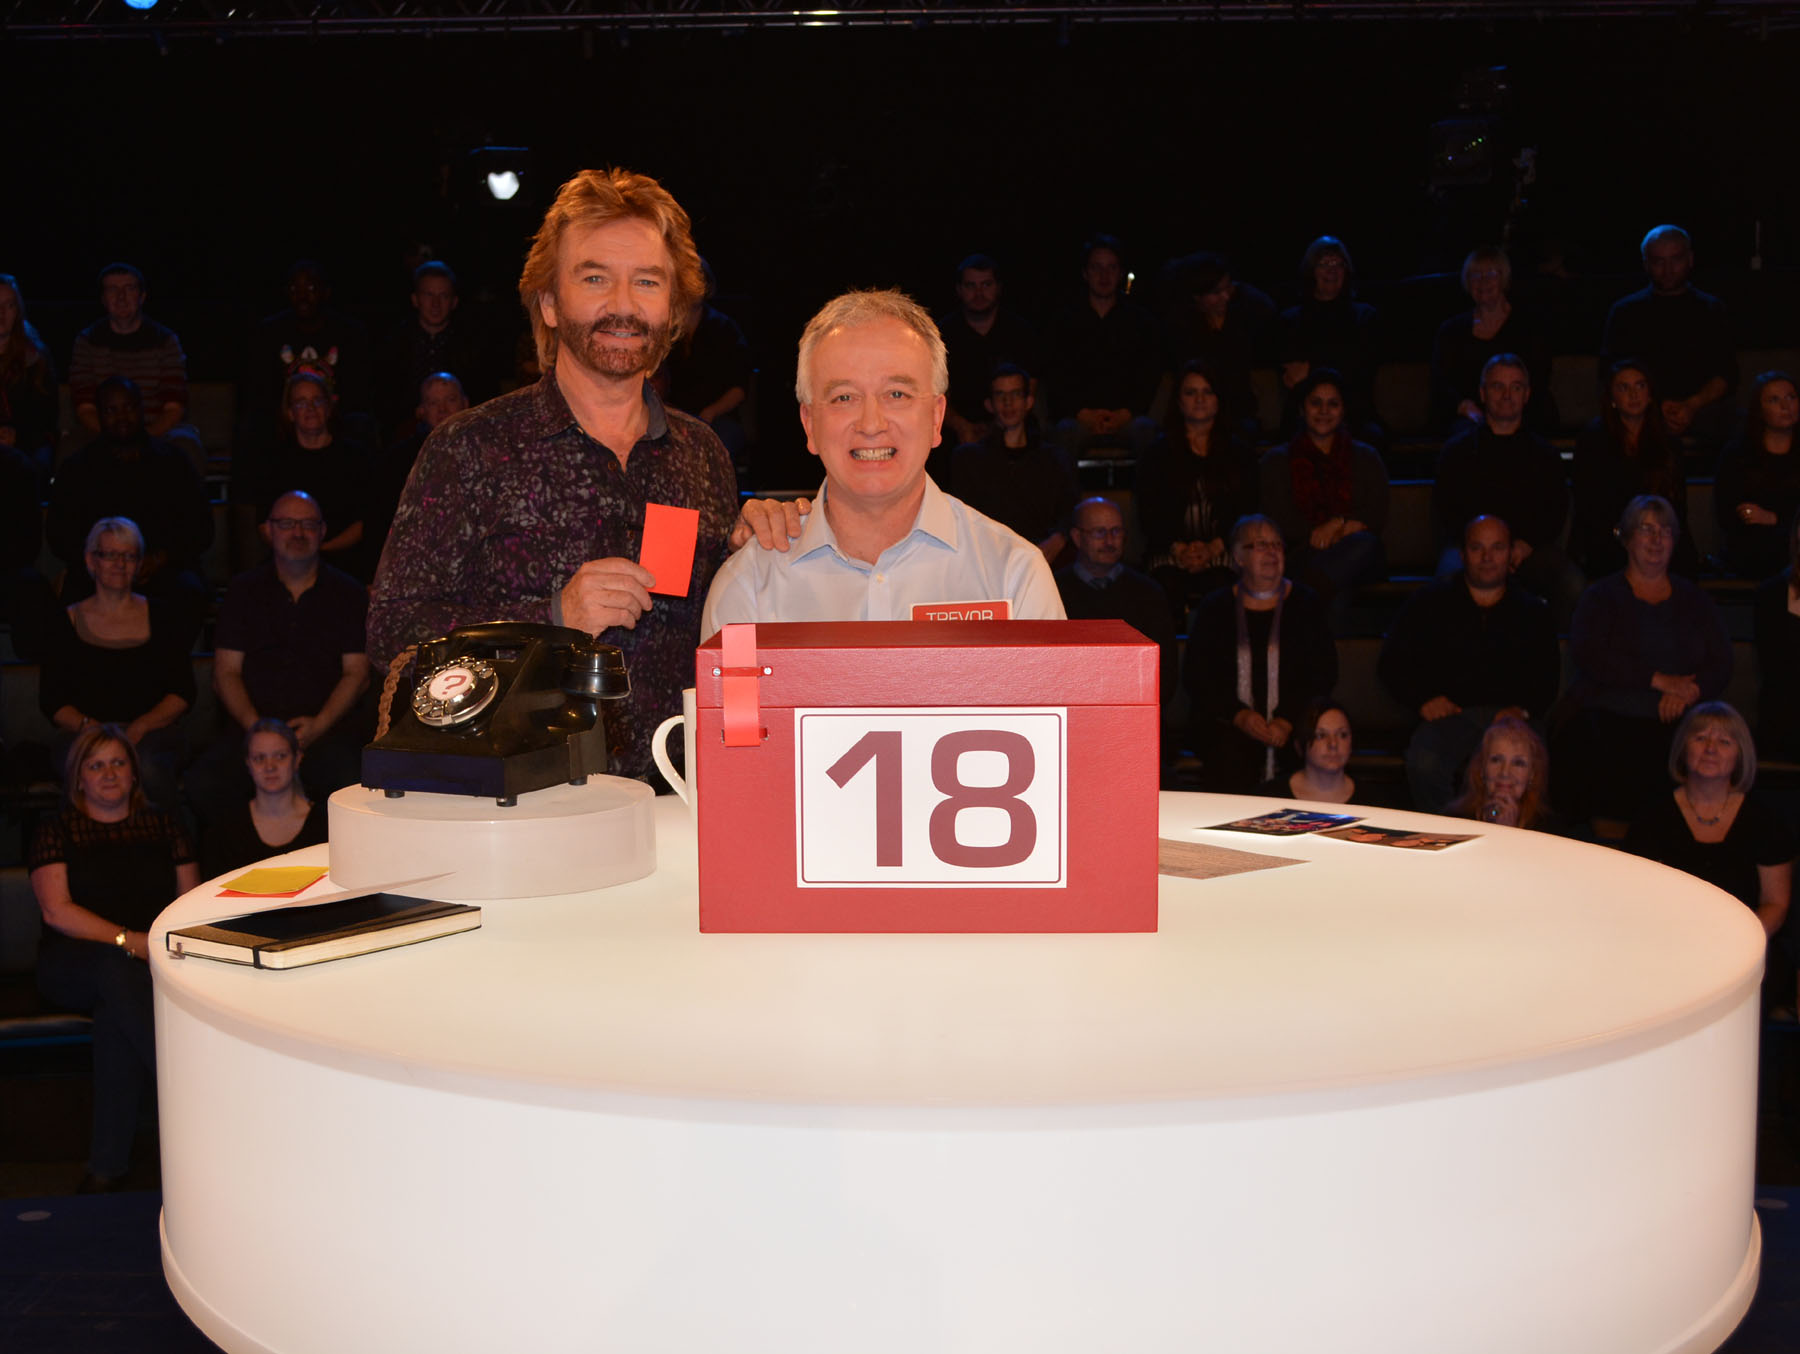 Trevor with Noel Edmonds, host of Channel 4's 'Deal or No Deal'.